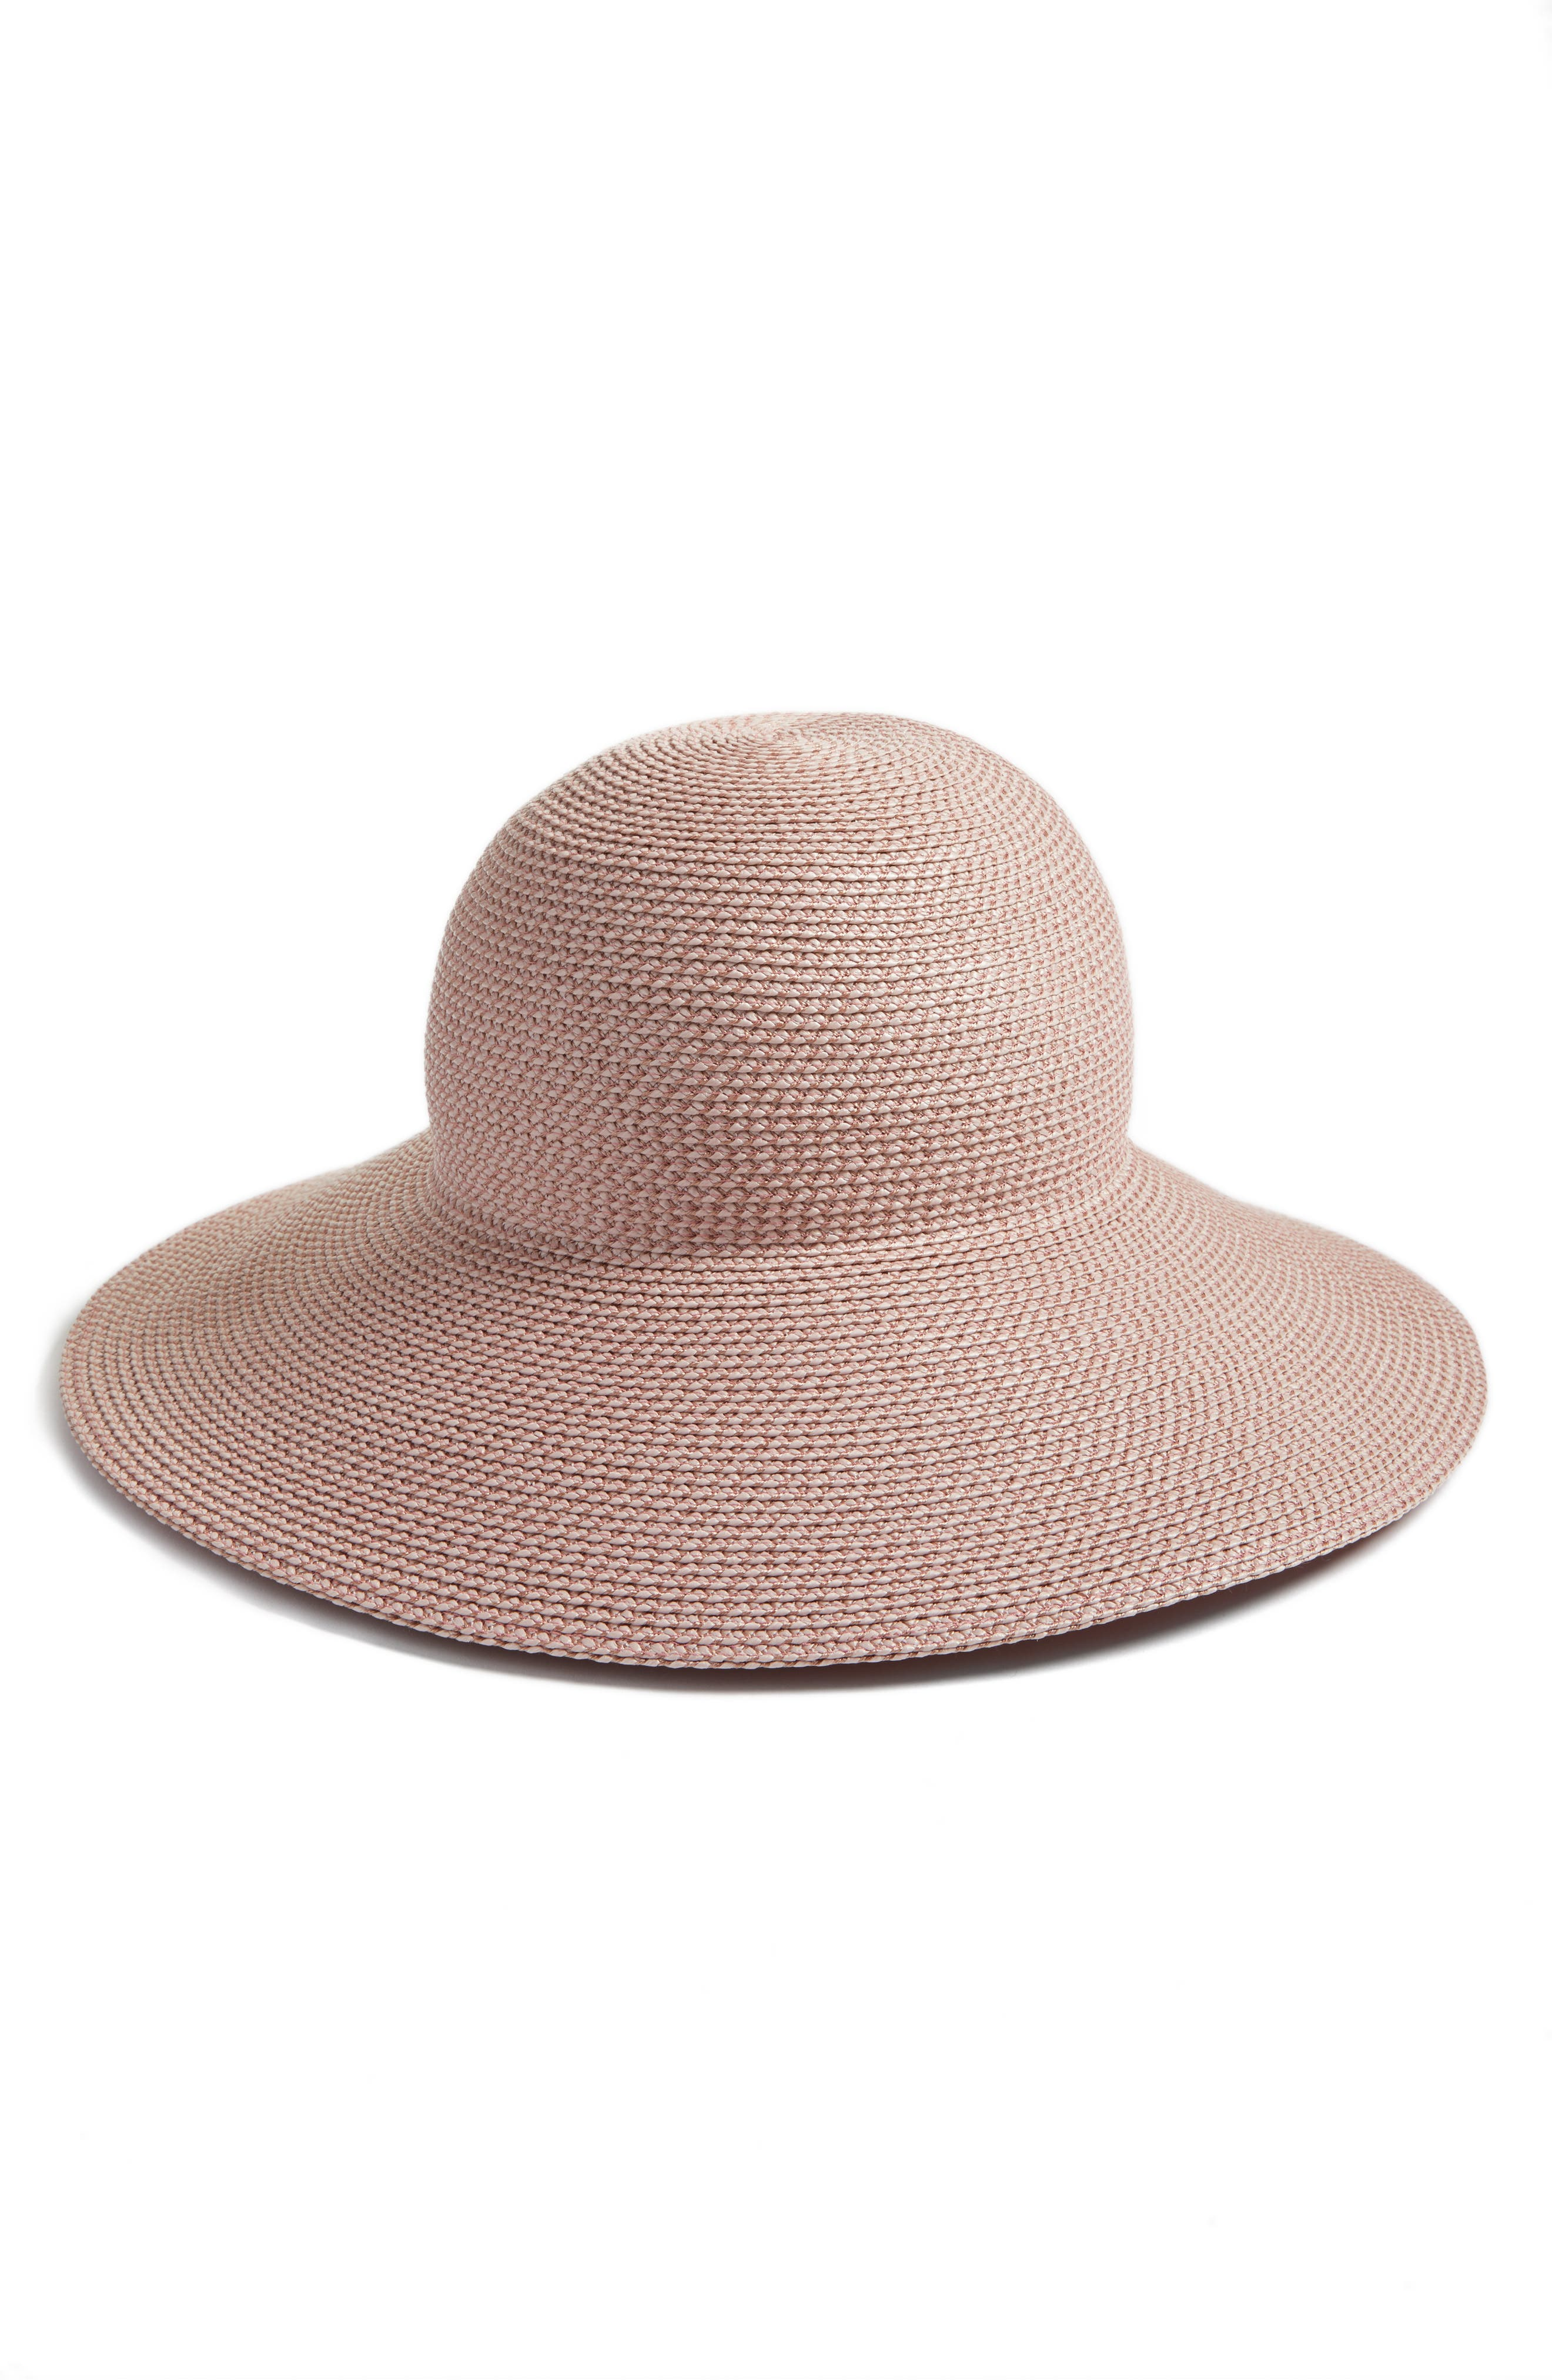 'Hampton' Straw Sun Hat,                             Main thumbnail 1, color,                             BLUSH